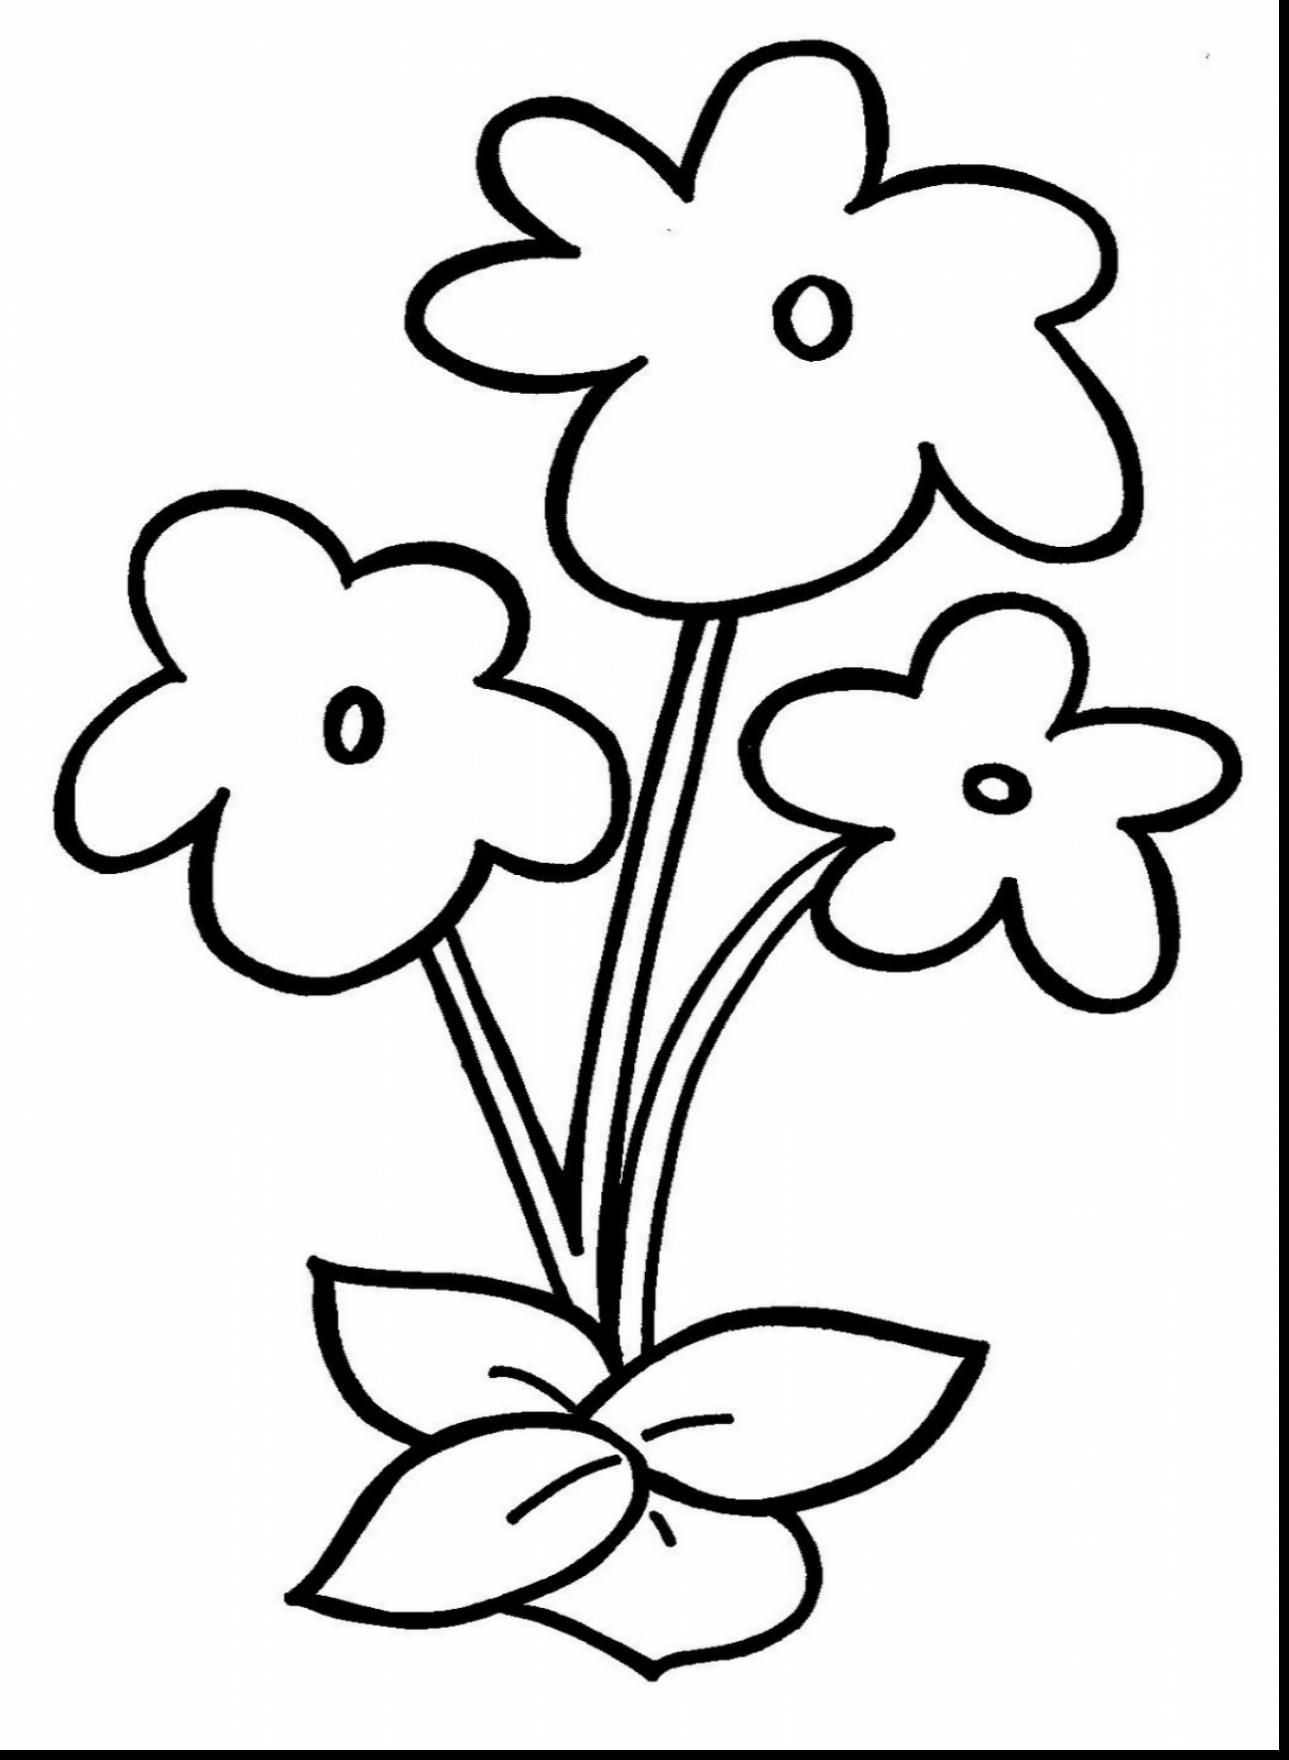 flower coloring pages printables free download to print beautiful spring flower coloring flower coloring printables pages